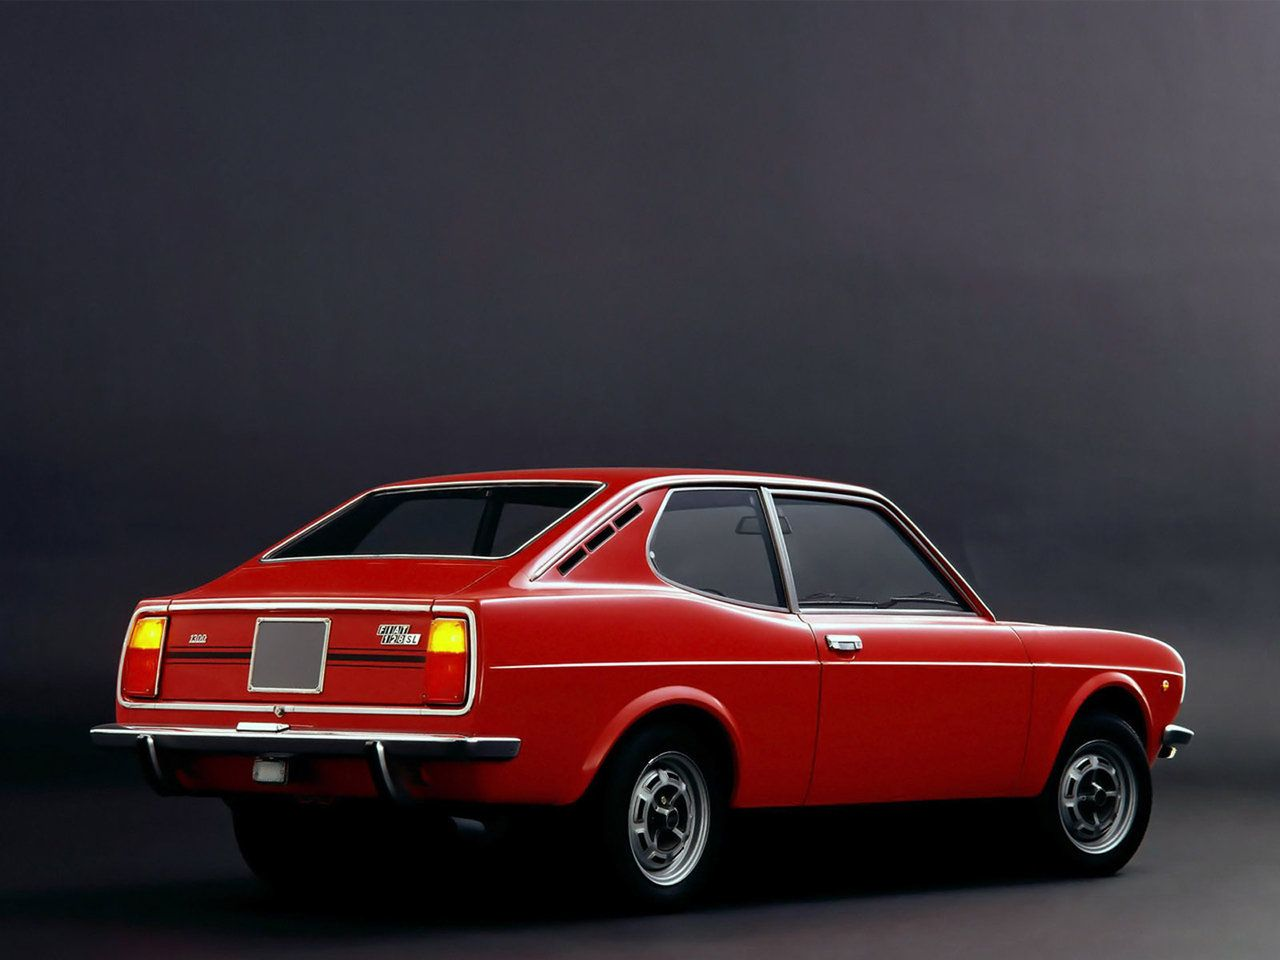 fiat 128sl automotive pinterest fiat fiat 128 and cars. Black Bedroom Furniture Sets. Home Design Ideas